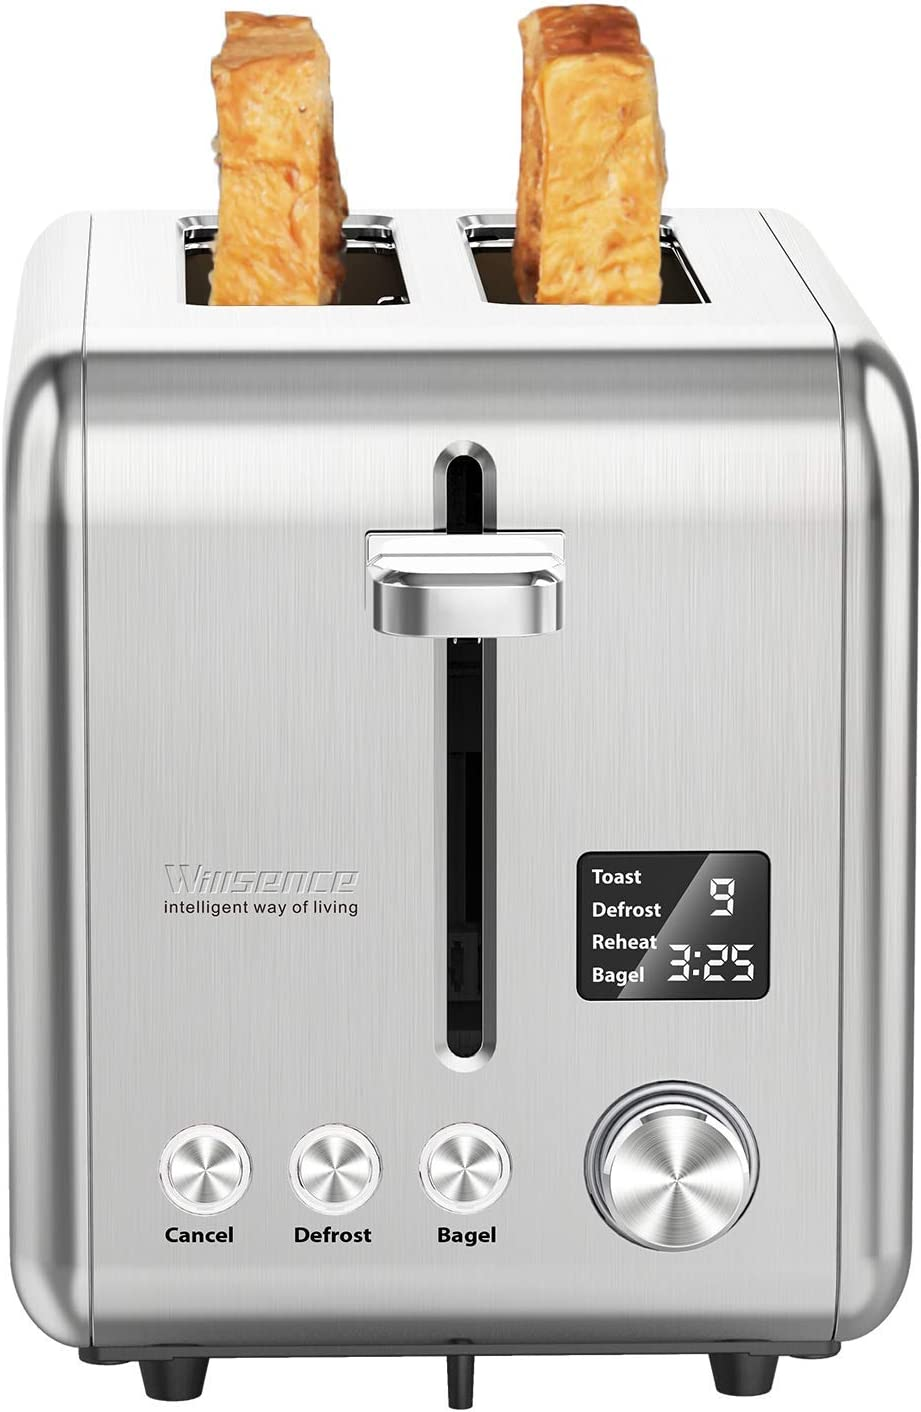 Toaster 2 Slice, Willsence Stainless Steel Bagel Toaster with Extra Wide Slots, LCD Display with 9 Bread Shade Settings and 6 Pre-set Programs, Removable Crumb Tray, 900W